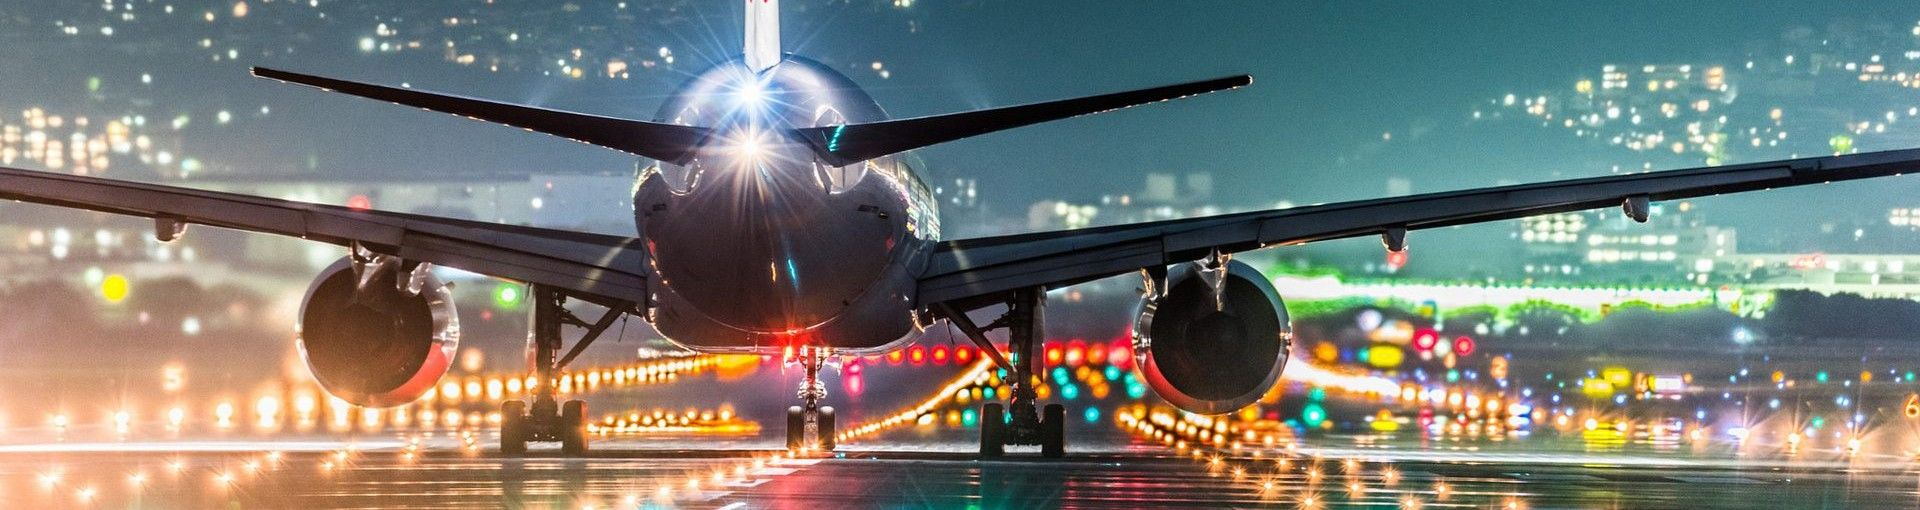 Airport Transportation New York Airport Transfer & Shuttle Services